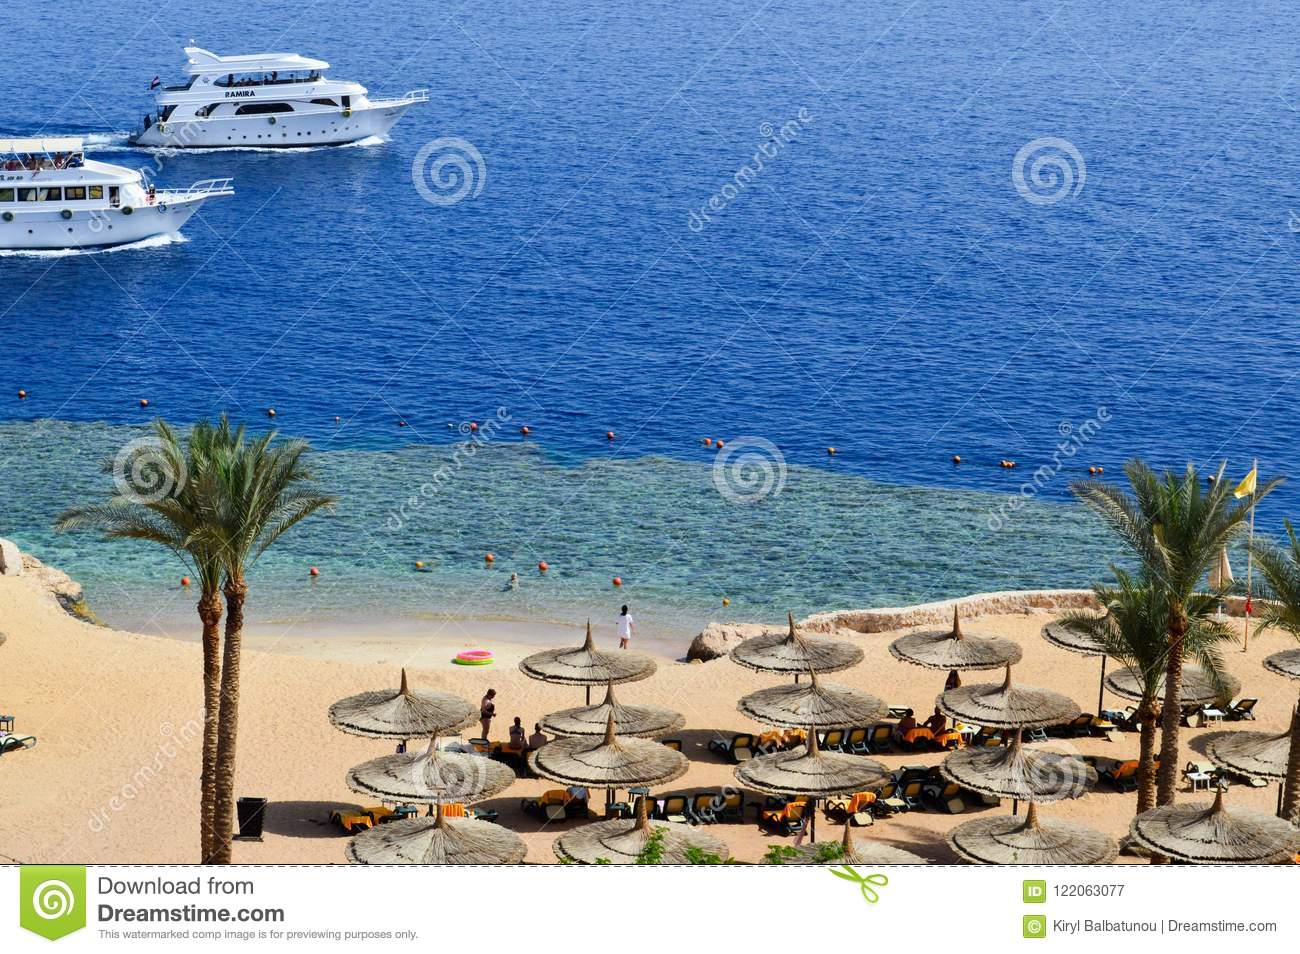 Top view of a sandy beach with sunbeds and sun umbrellas and two large white ships, a boat, a cruise liner floating in the sea on